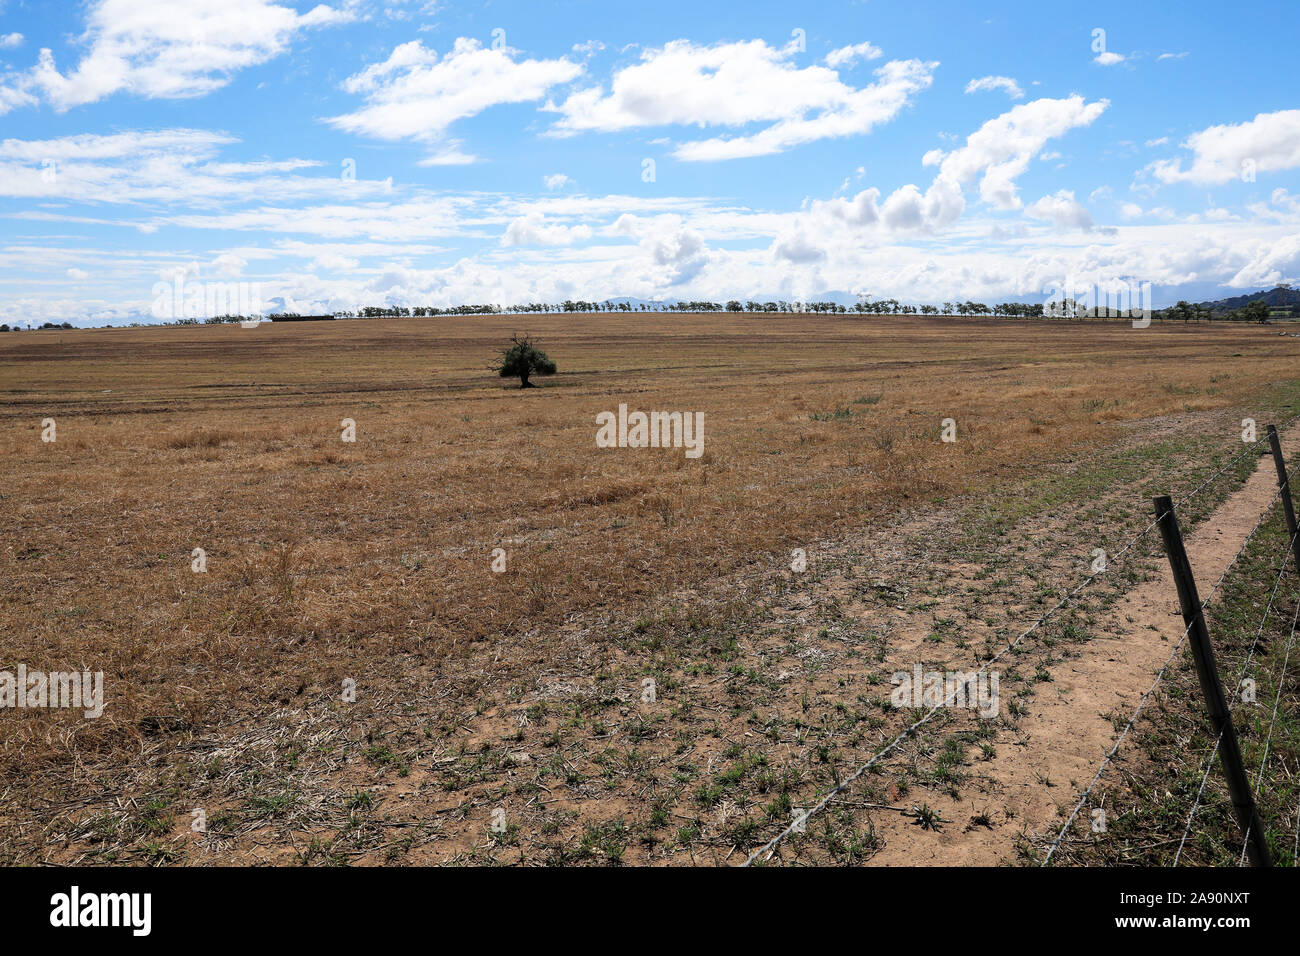 Farmland in the Paardeberg area, Windmeul near Paarl in the Western Cape Province of South Africa. Stock Photo